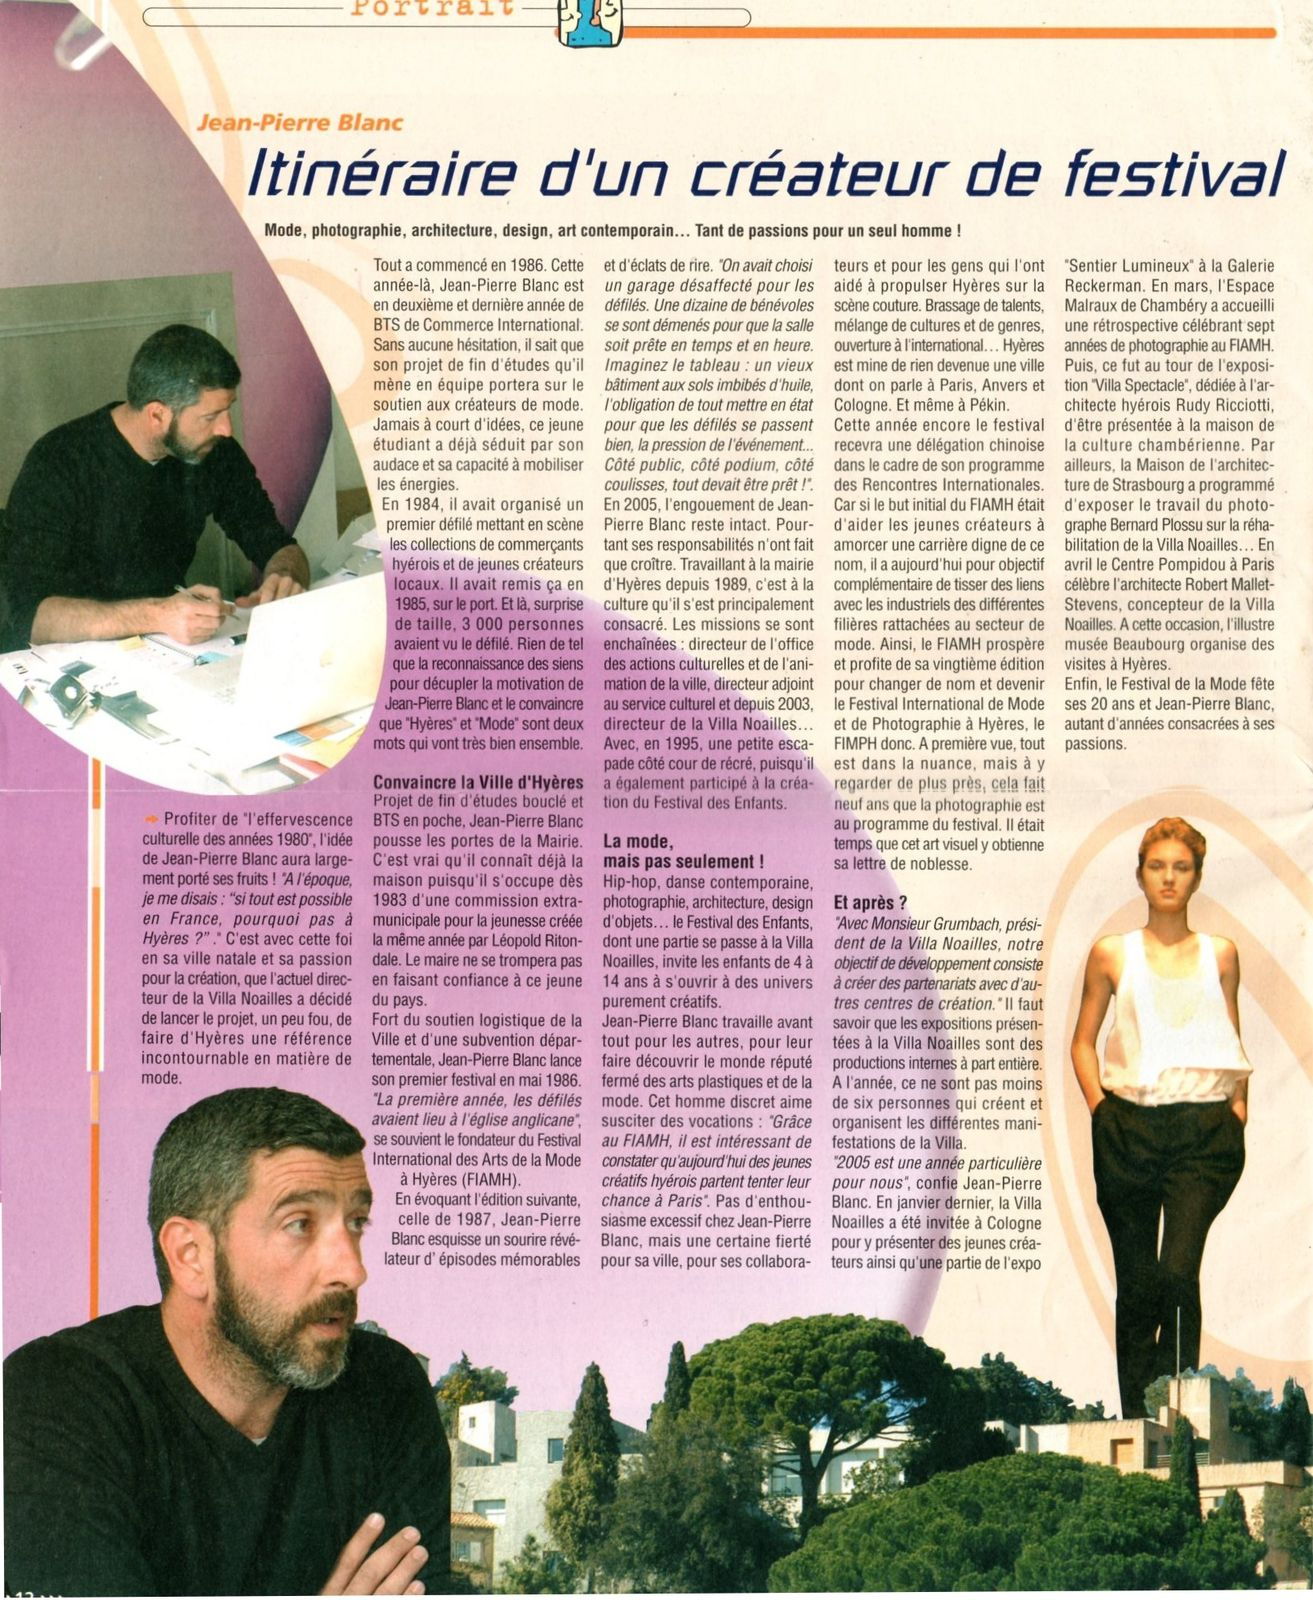 DANS LE JOURNAL MUNICIPAL D'HYERES N° 94 D'AVRIL 2005